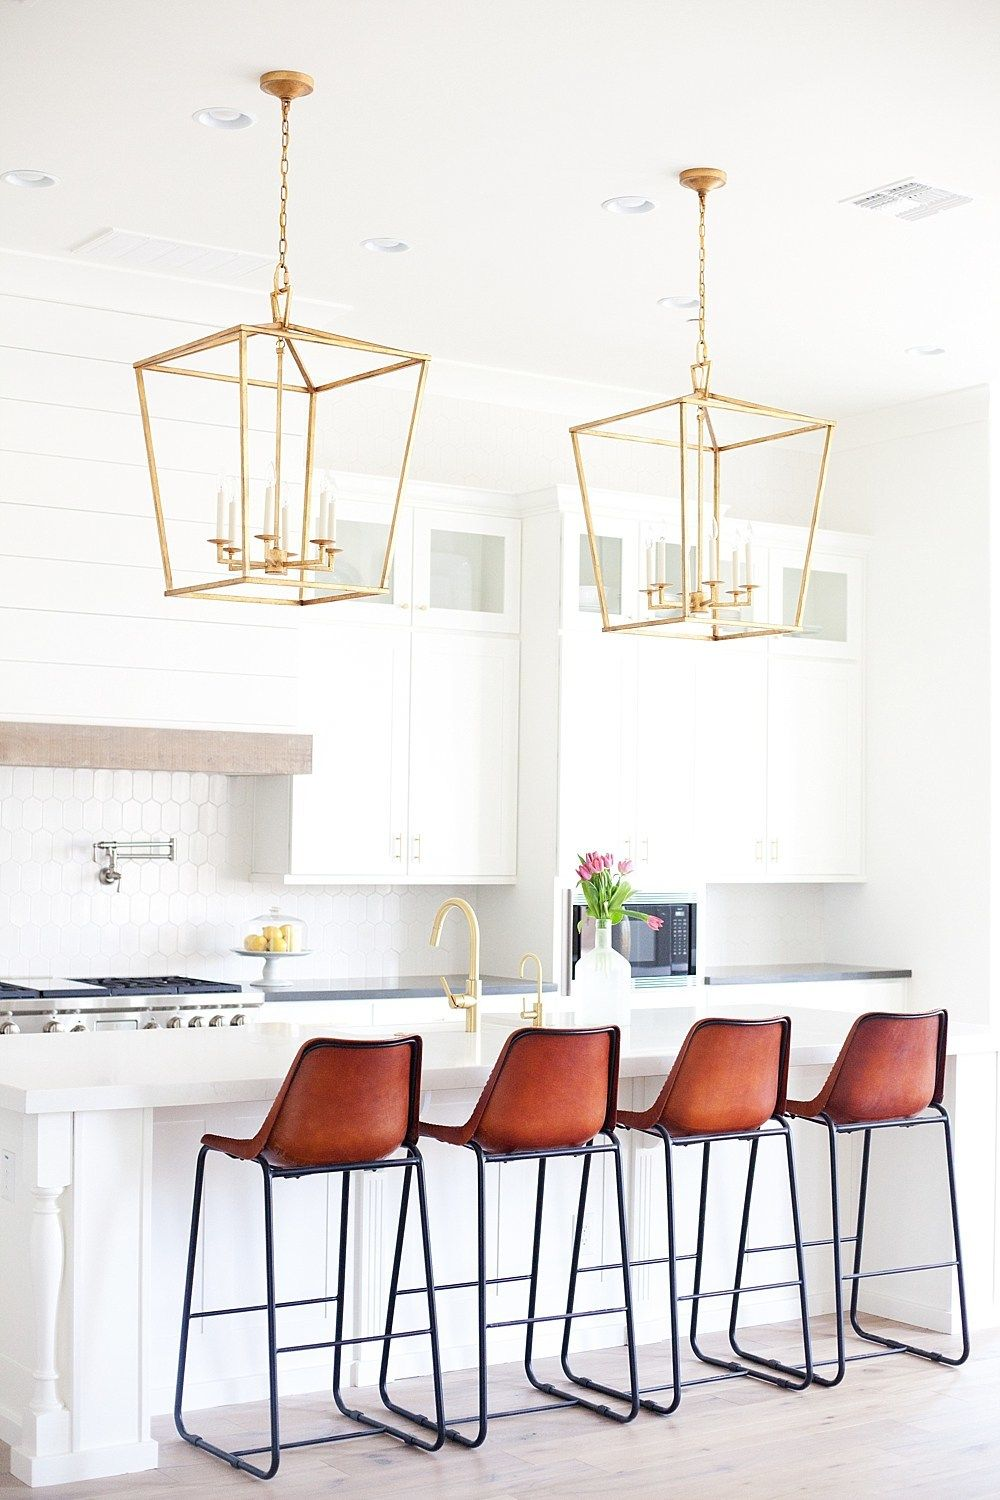 12 Stylish Stools To Complete Your Kitchen Island